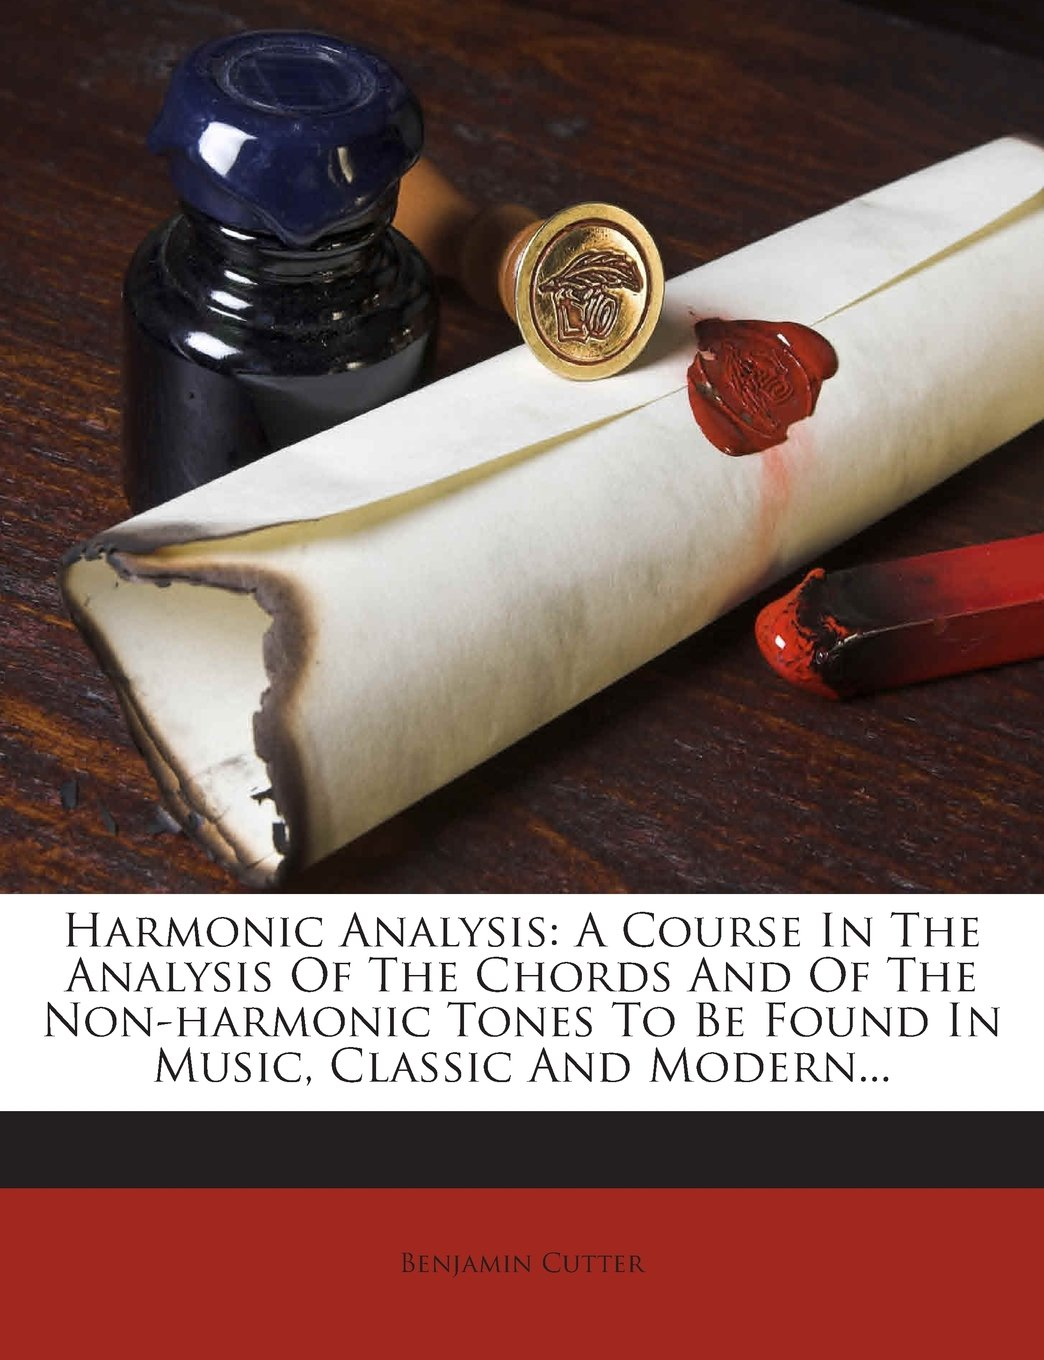 Harmonic Analysis: A Course In The Analysis Of The Chords And Of The Non-harmonic Tones To Be Found In Music, Classic And Modern... PDF